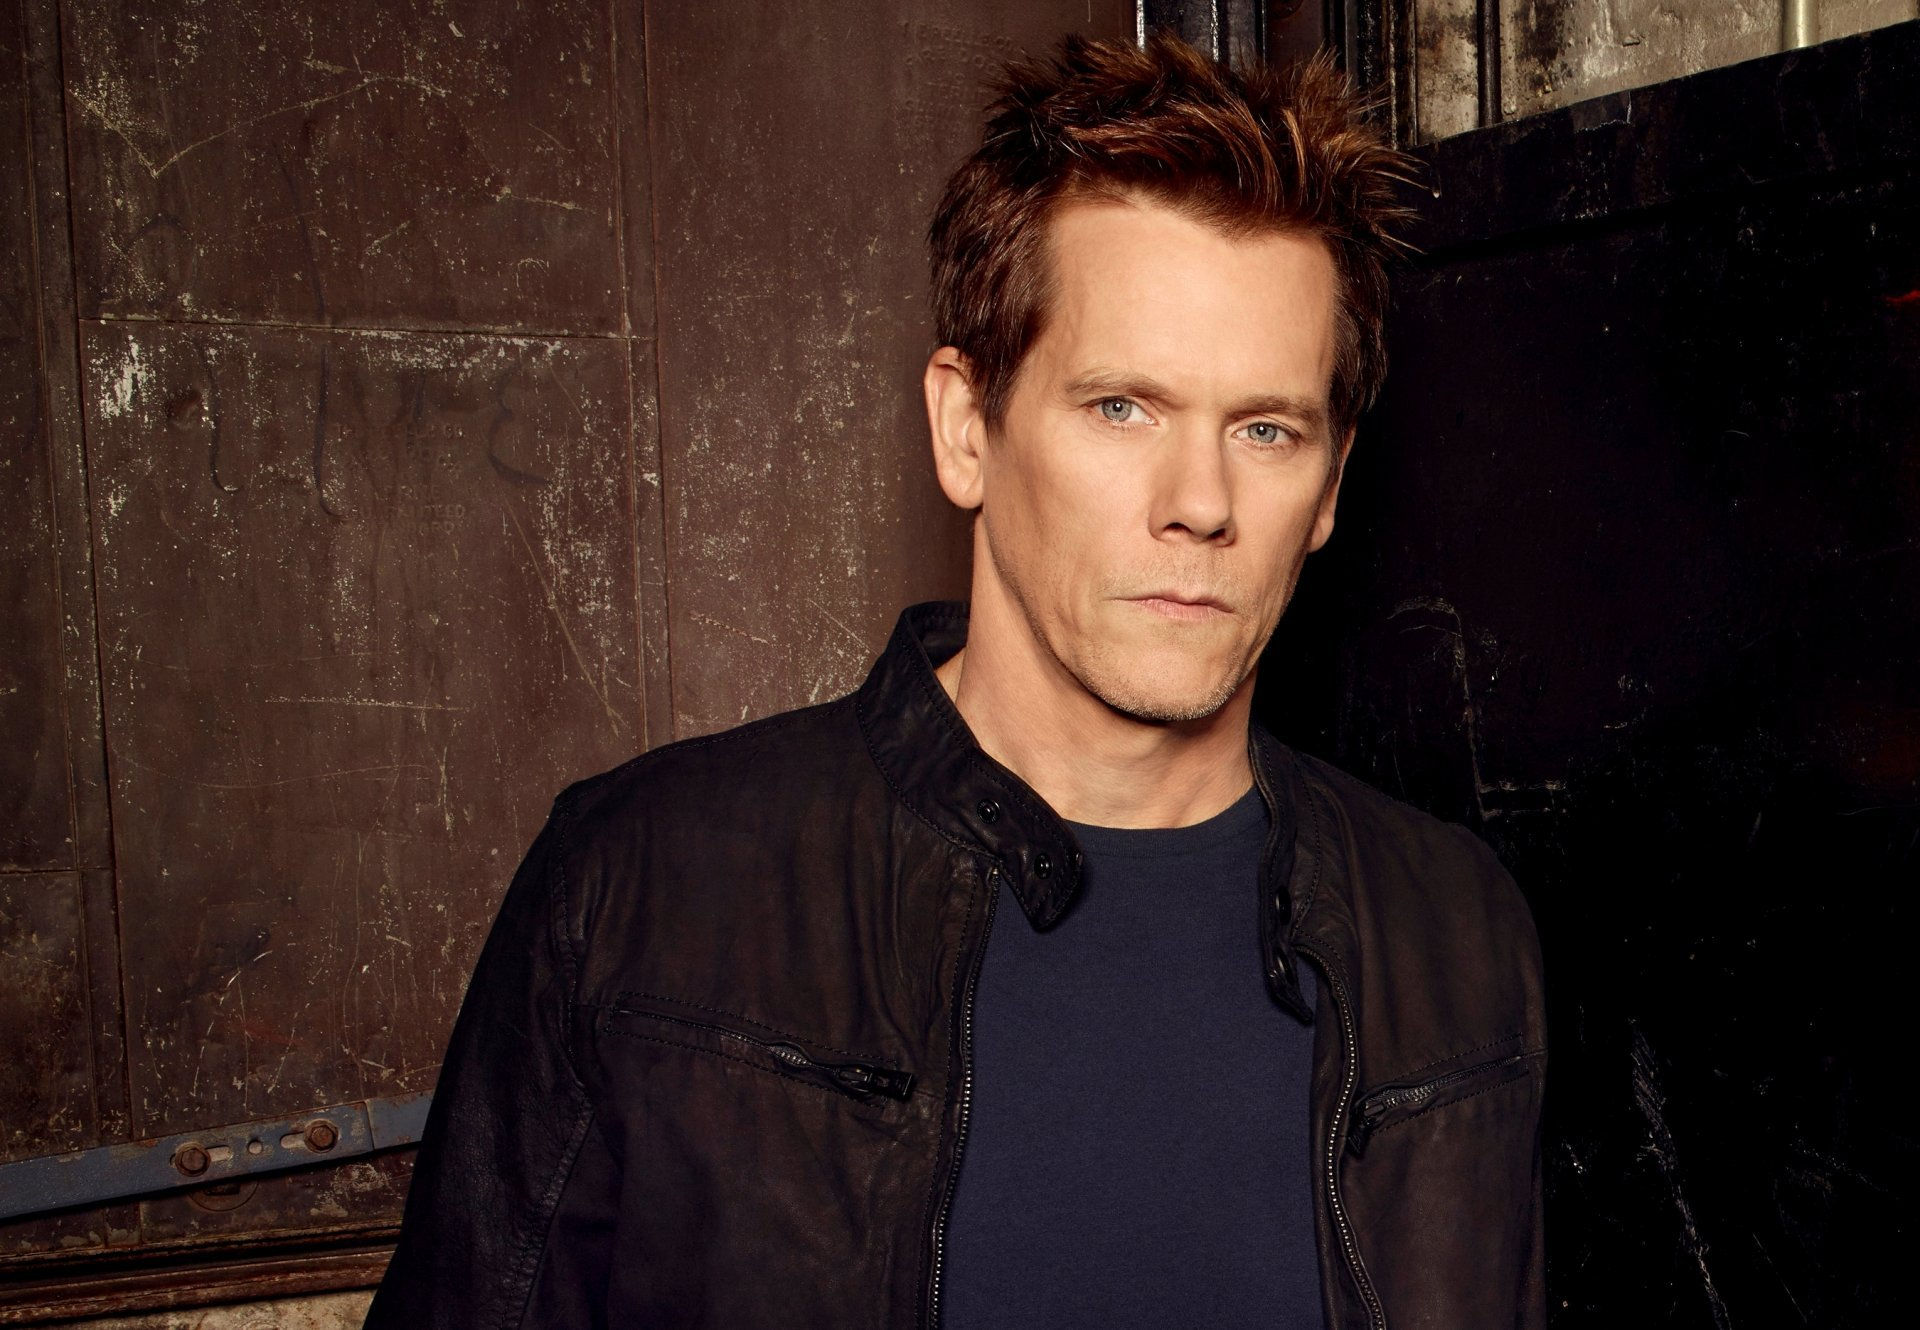 1920x1330 - Kevin Bacon Wallpapers 31